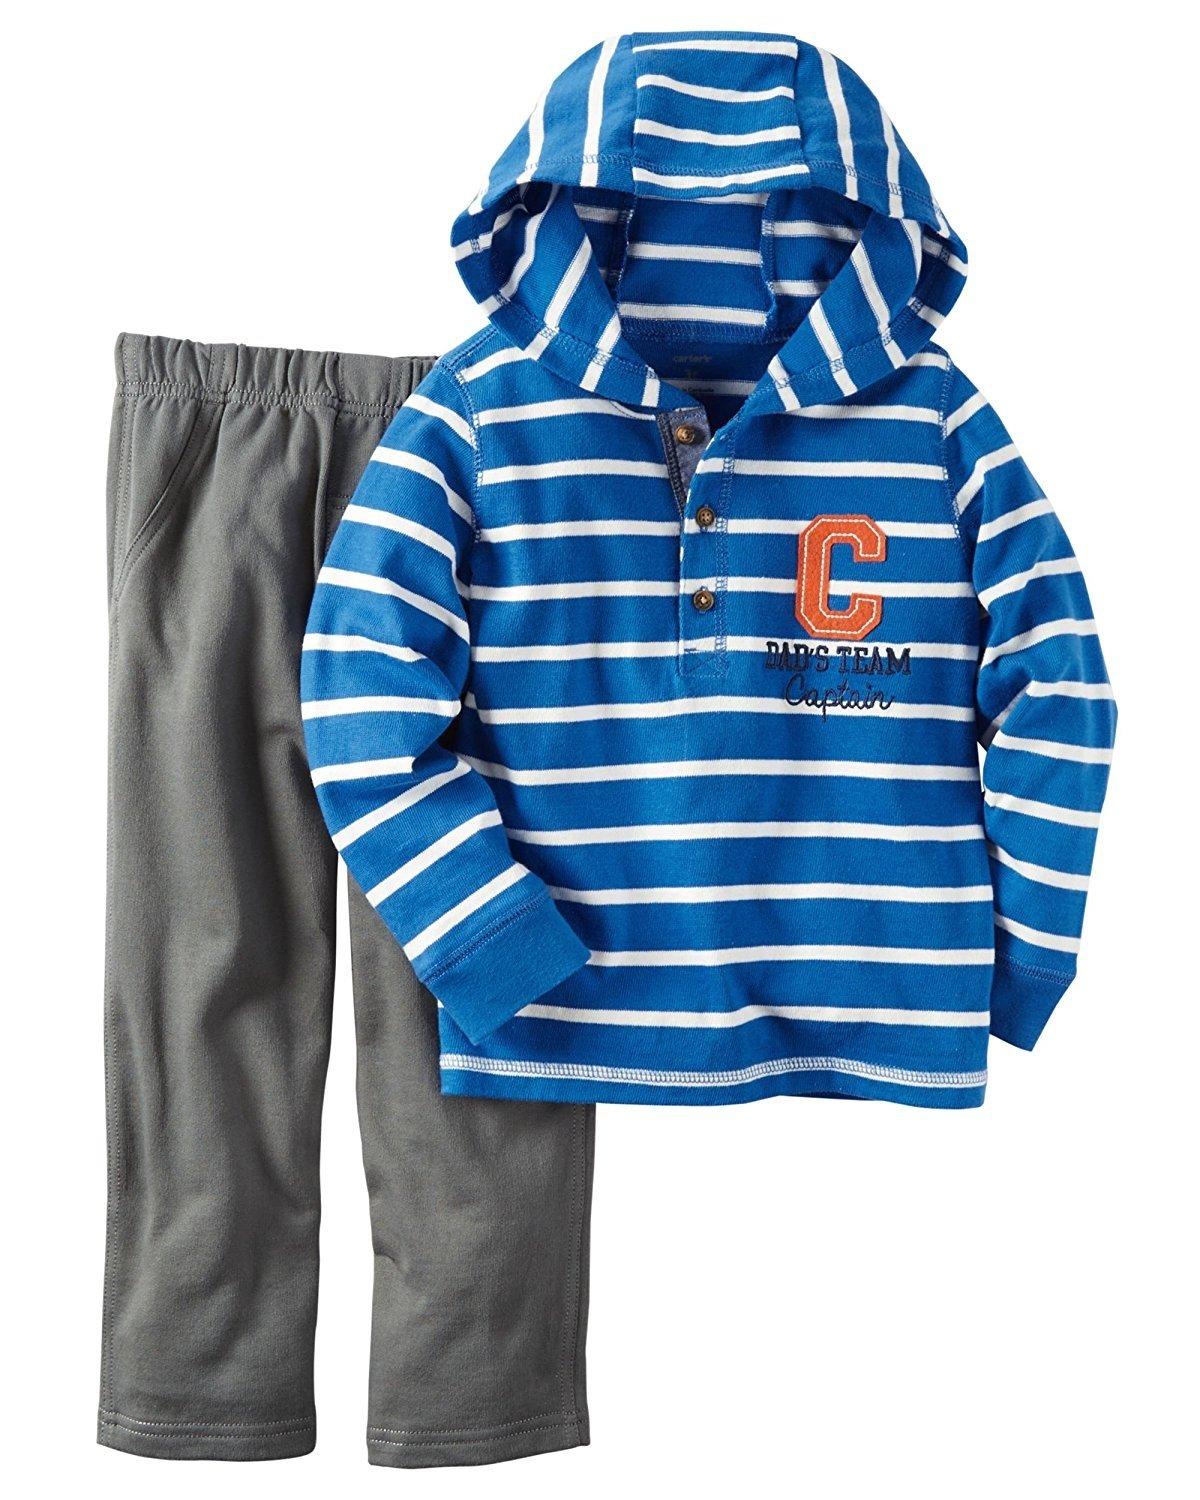 b64169c70 Carter's Baby Boys' 2 Piece Plaid Woven Top and Pants Set – Just ...